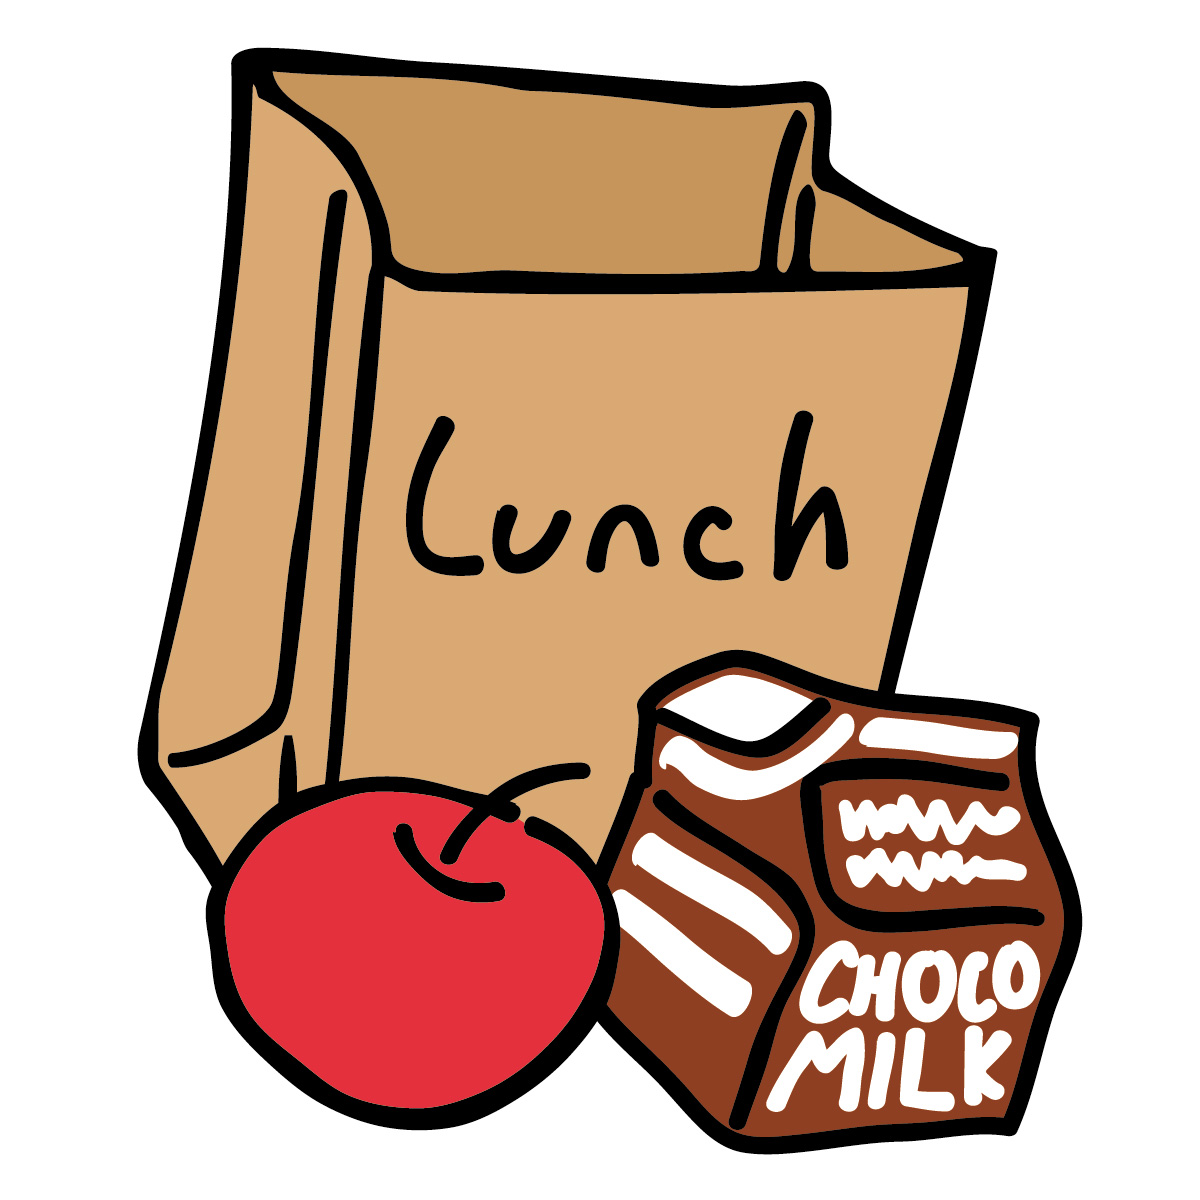 Trolley clipart lunch Lunch Pictures Lunch clipart Free